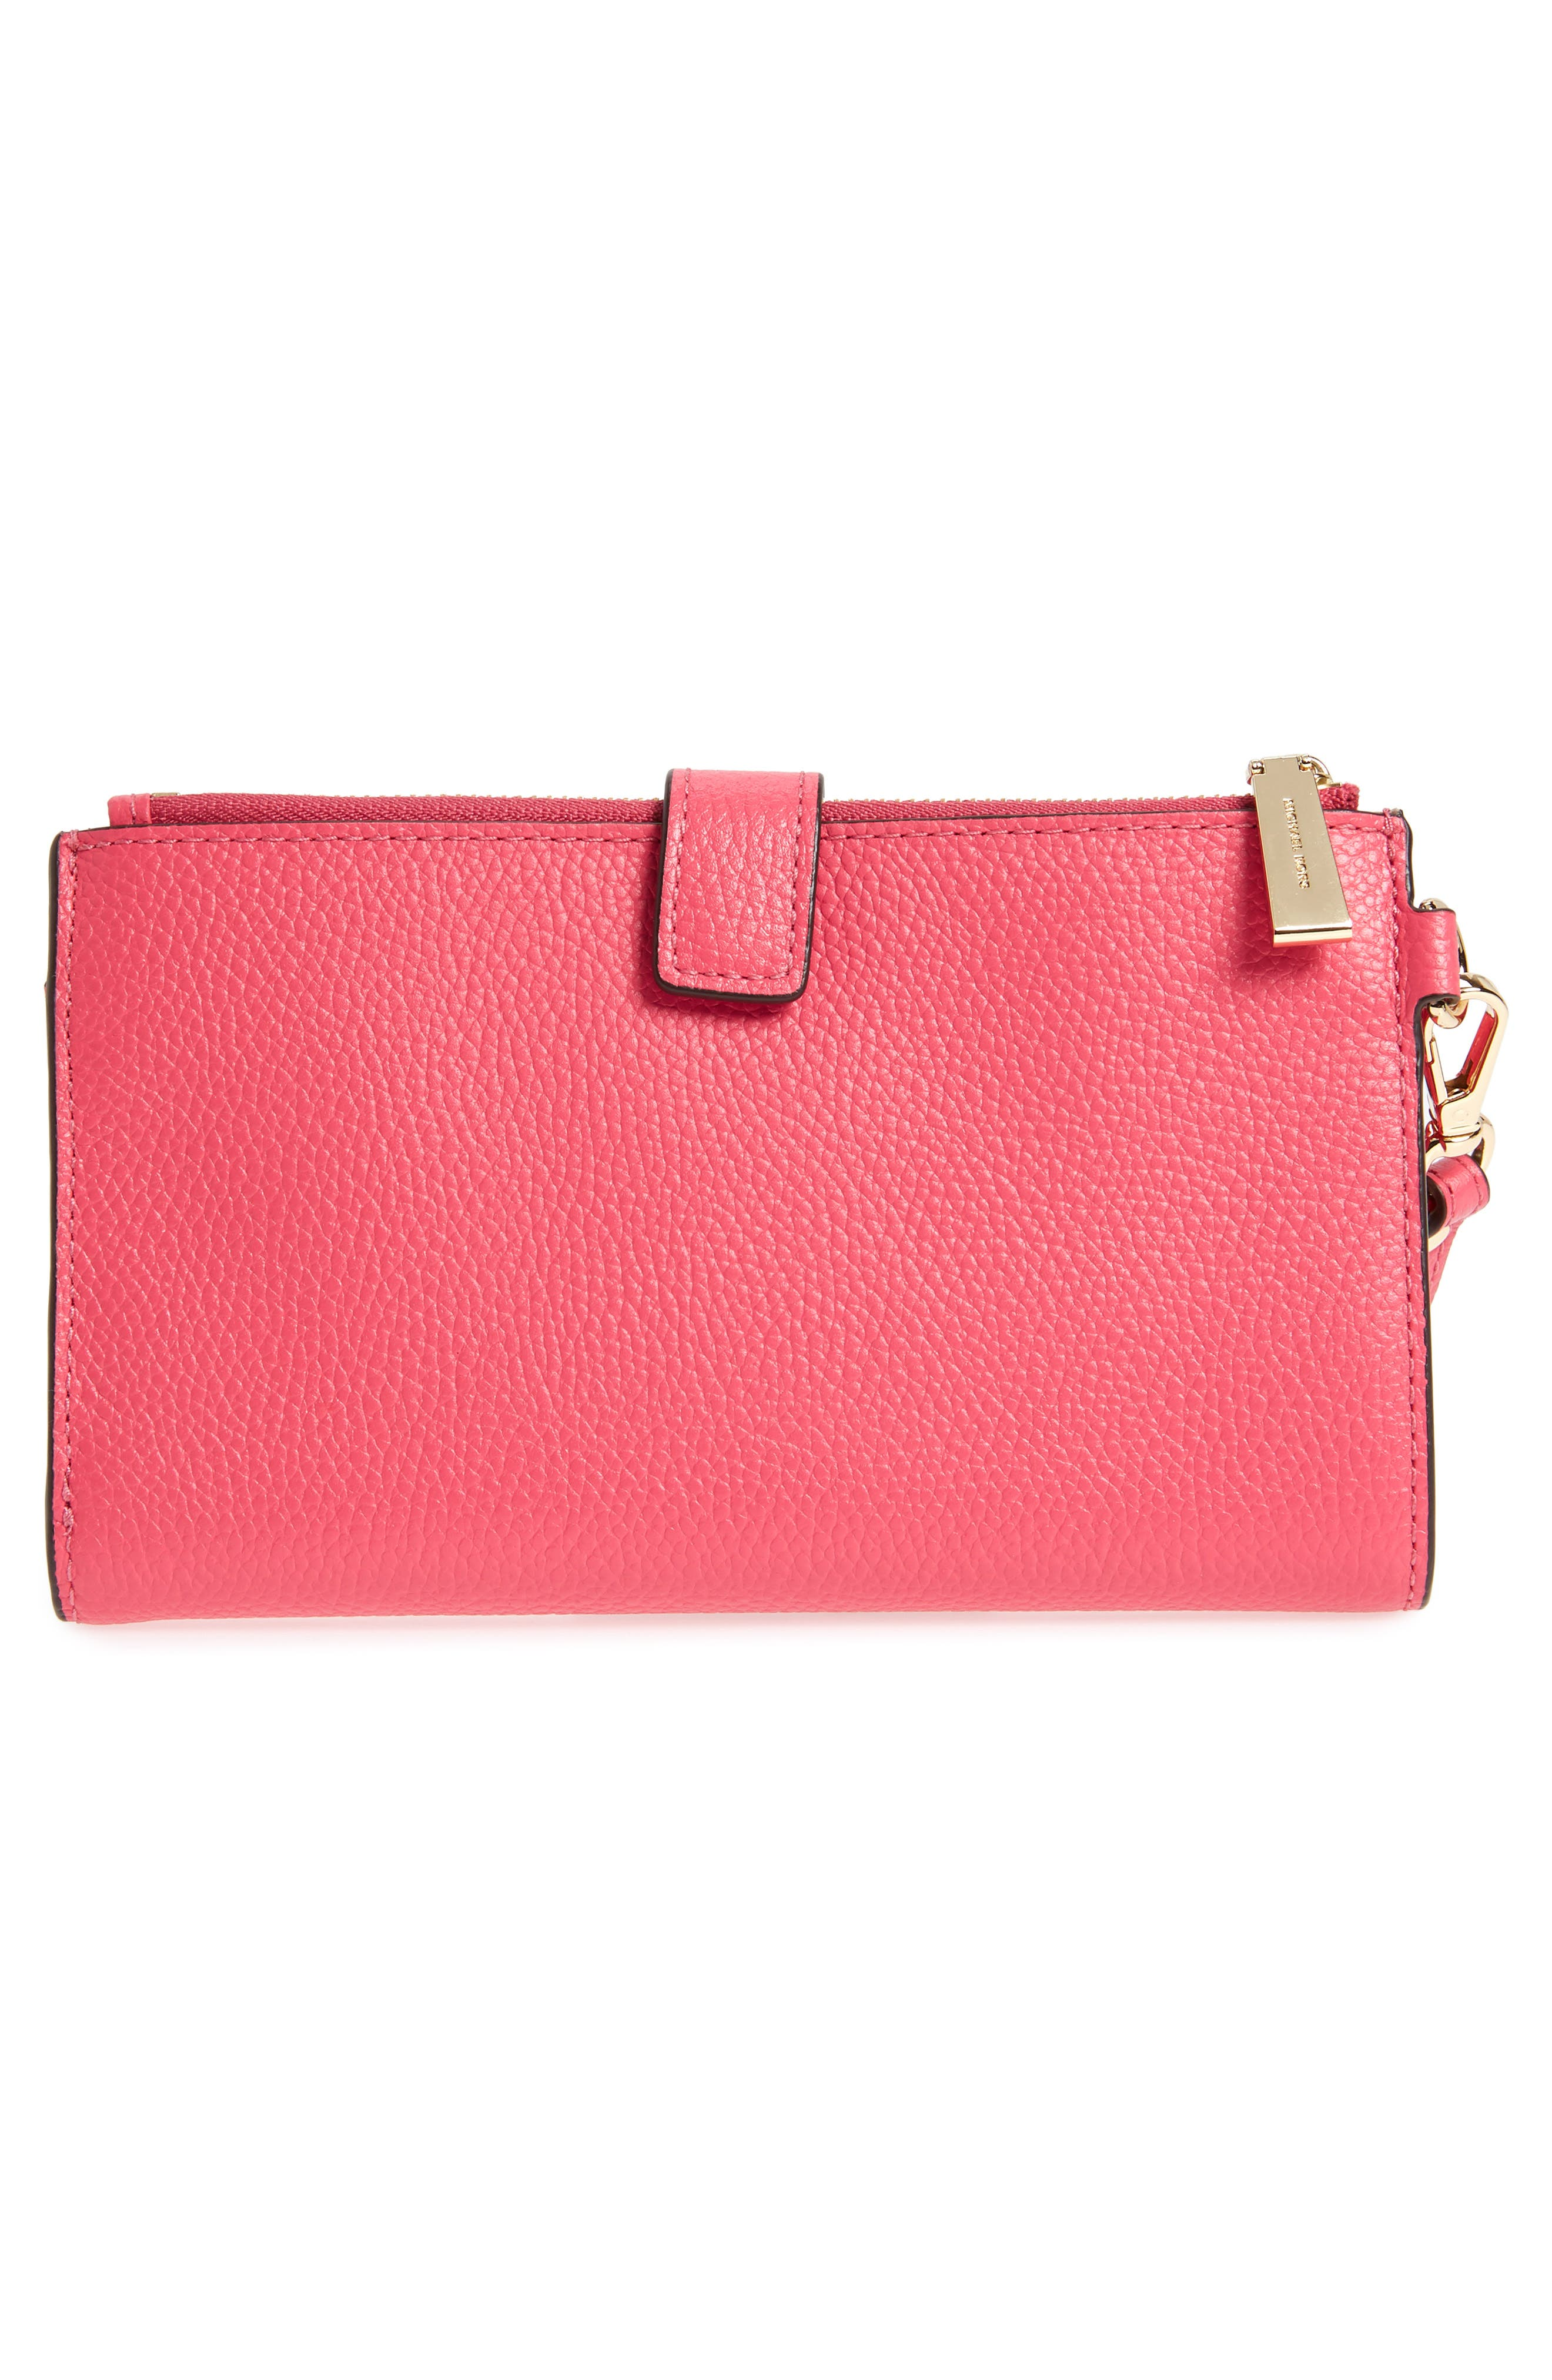 Adele Leather Wristlet,                             Alternate thumbnail 25, color,